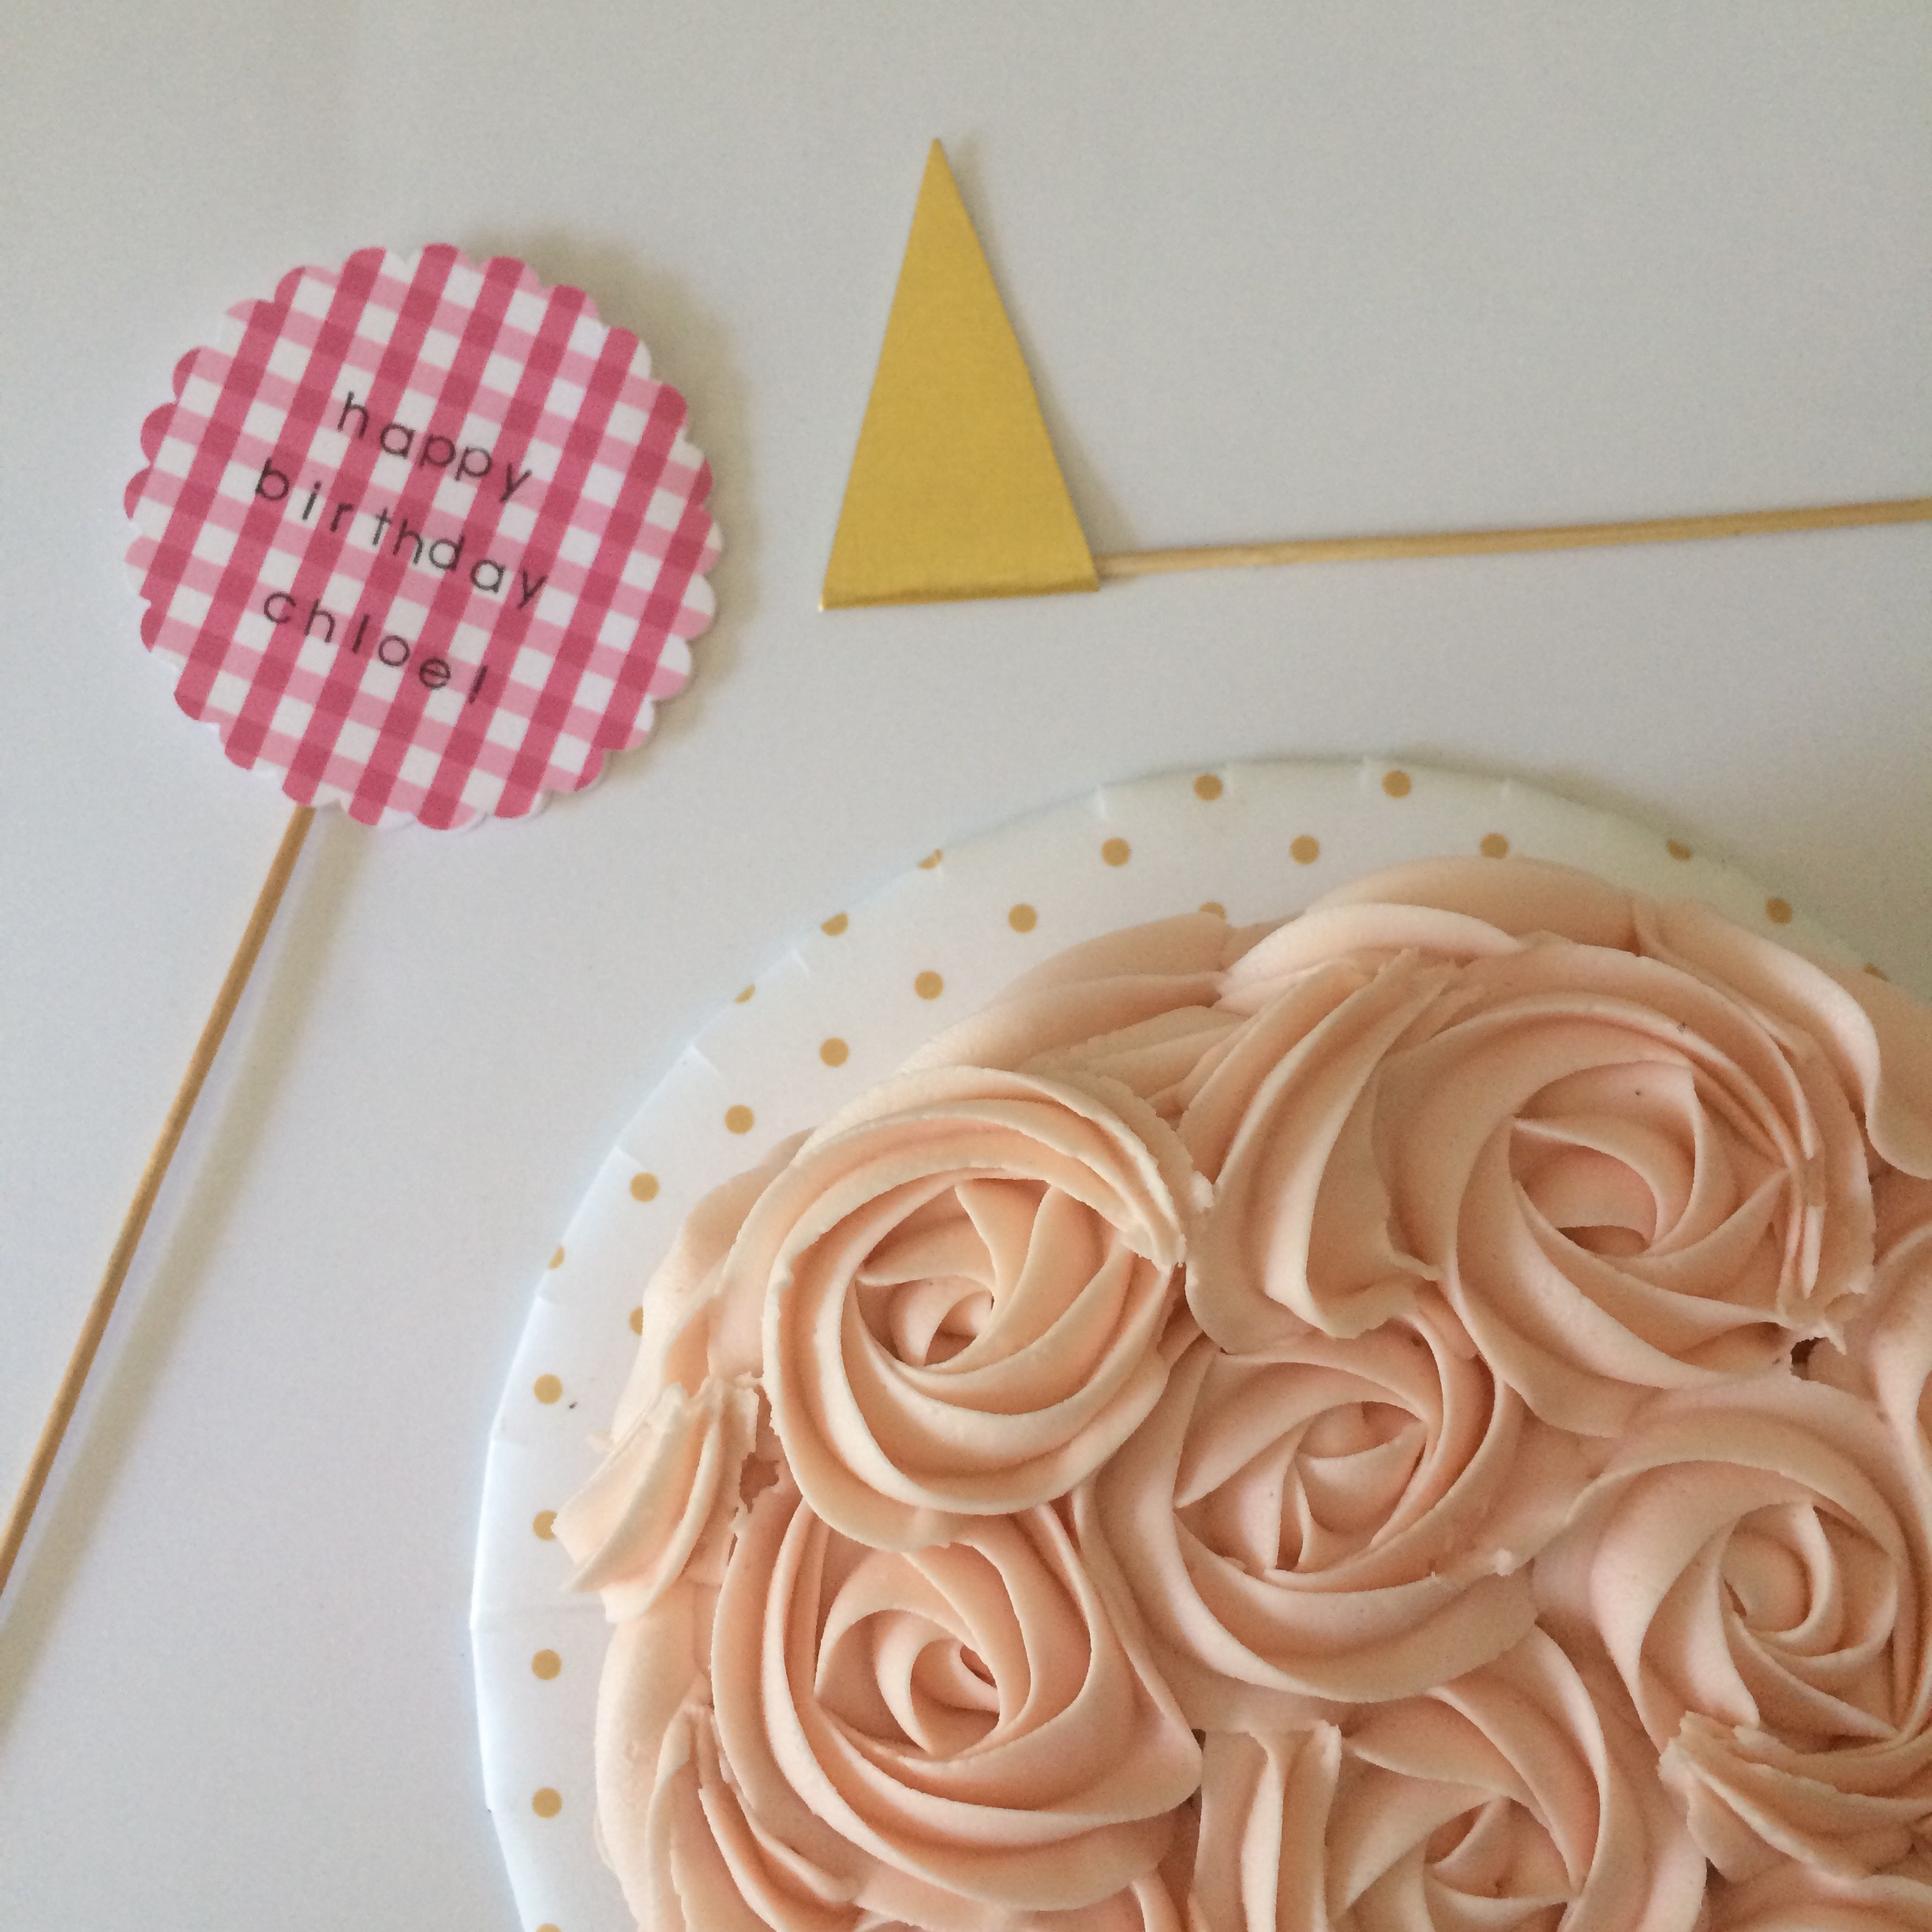 rose cake with paper flags